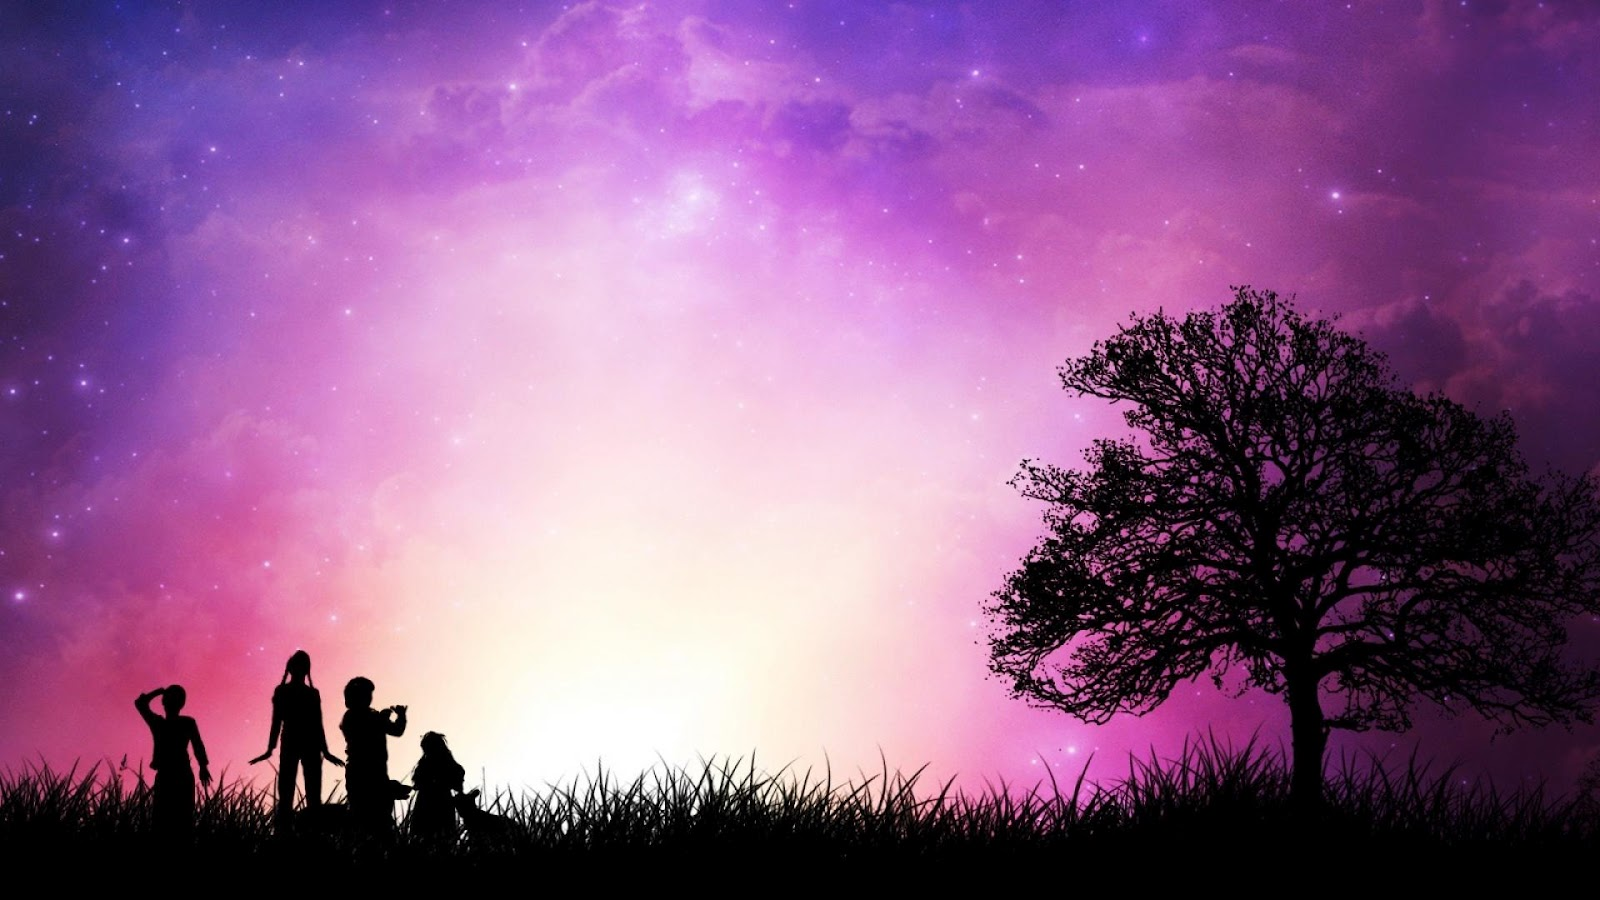 Love Wallpapers For Laptop Screen : Romantic Wallpapers HD Pictures HD Wallpapers ...